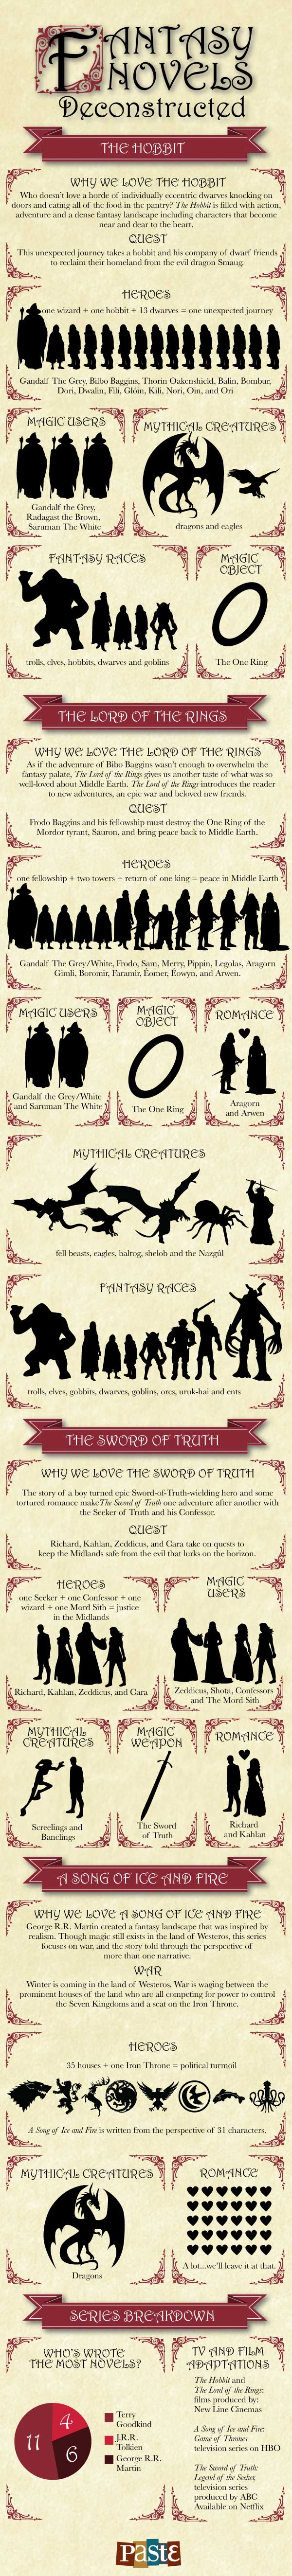 Fantasy Novels Deconstructed